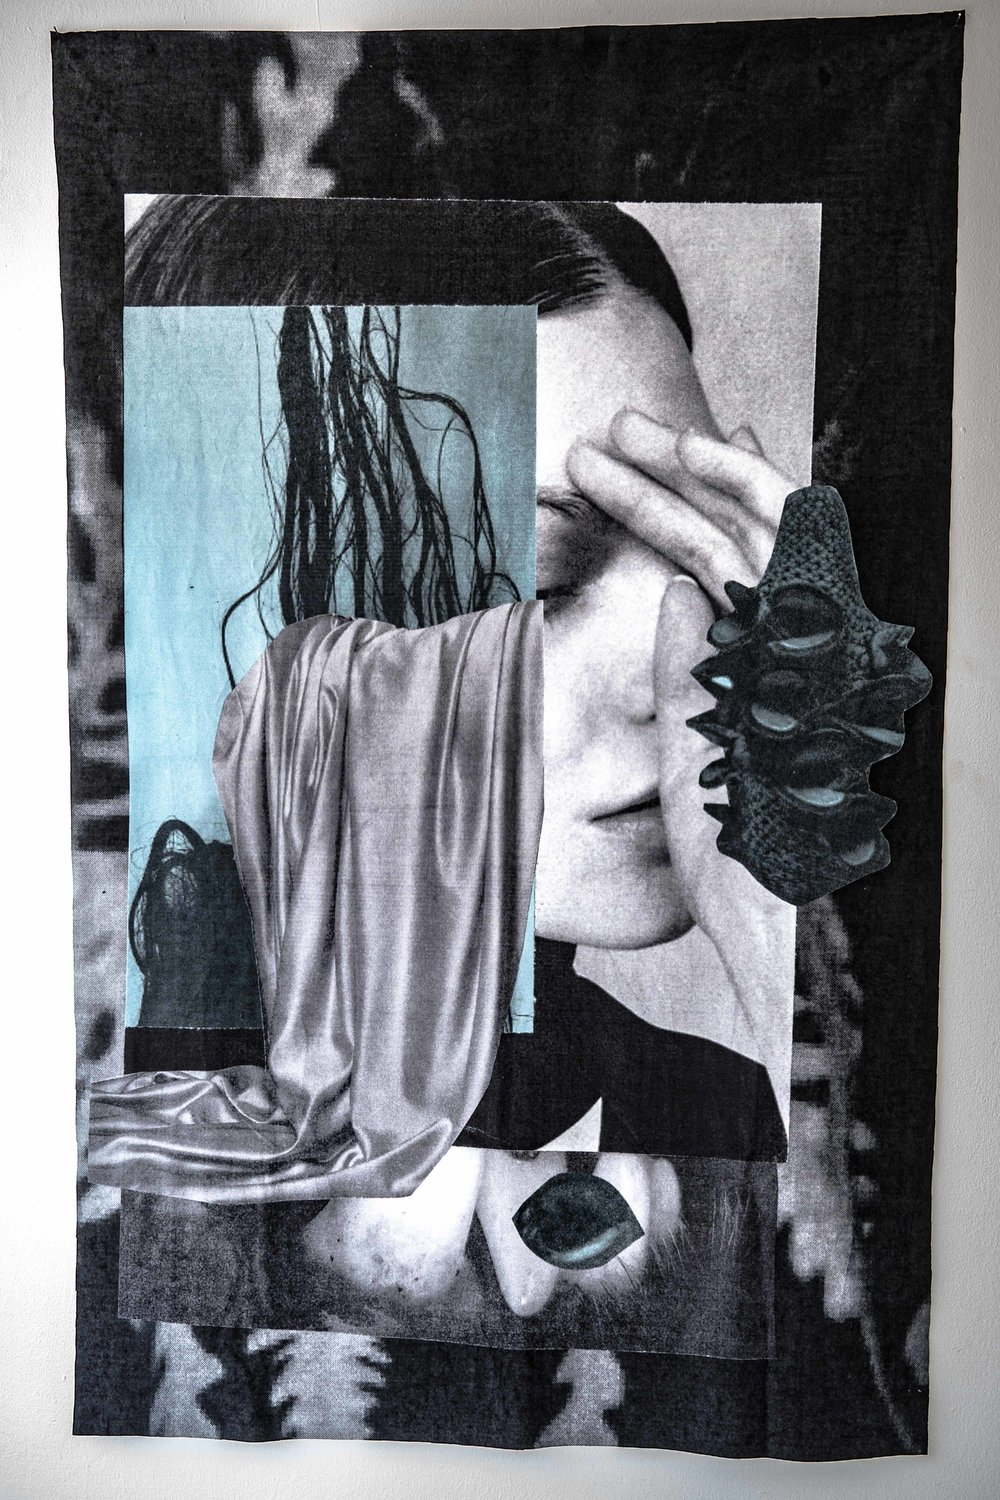 Cindy Rehm,  Grey Sisters I , 2018, collage printed on fabric, 56 x 35 inches, photo credit: Jared Kennedy